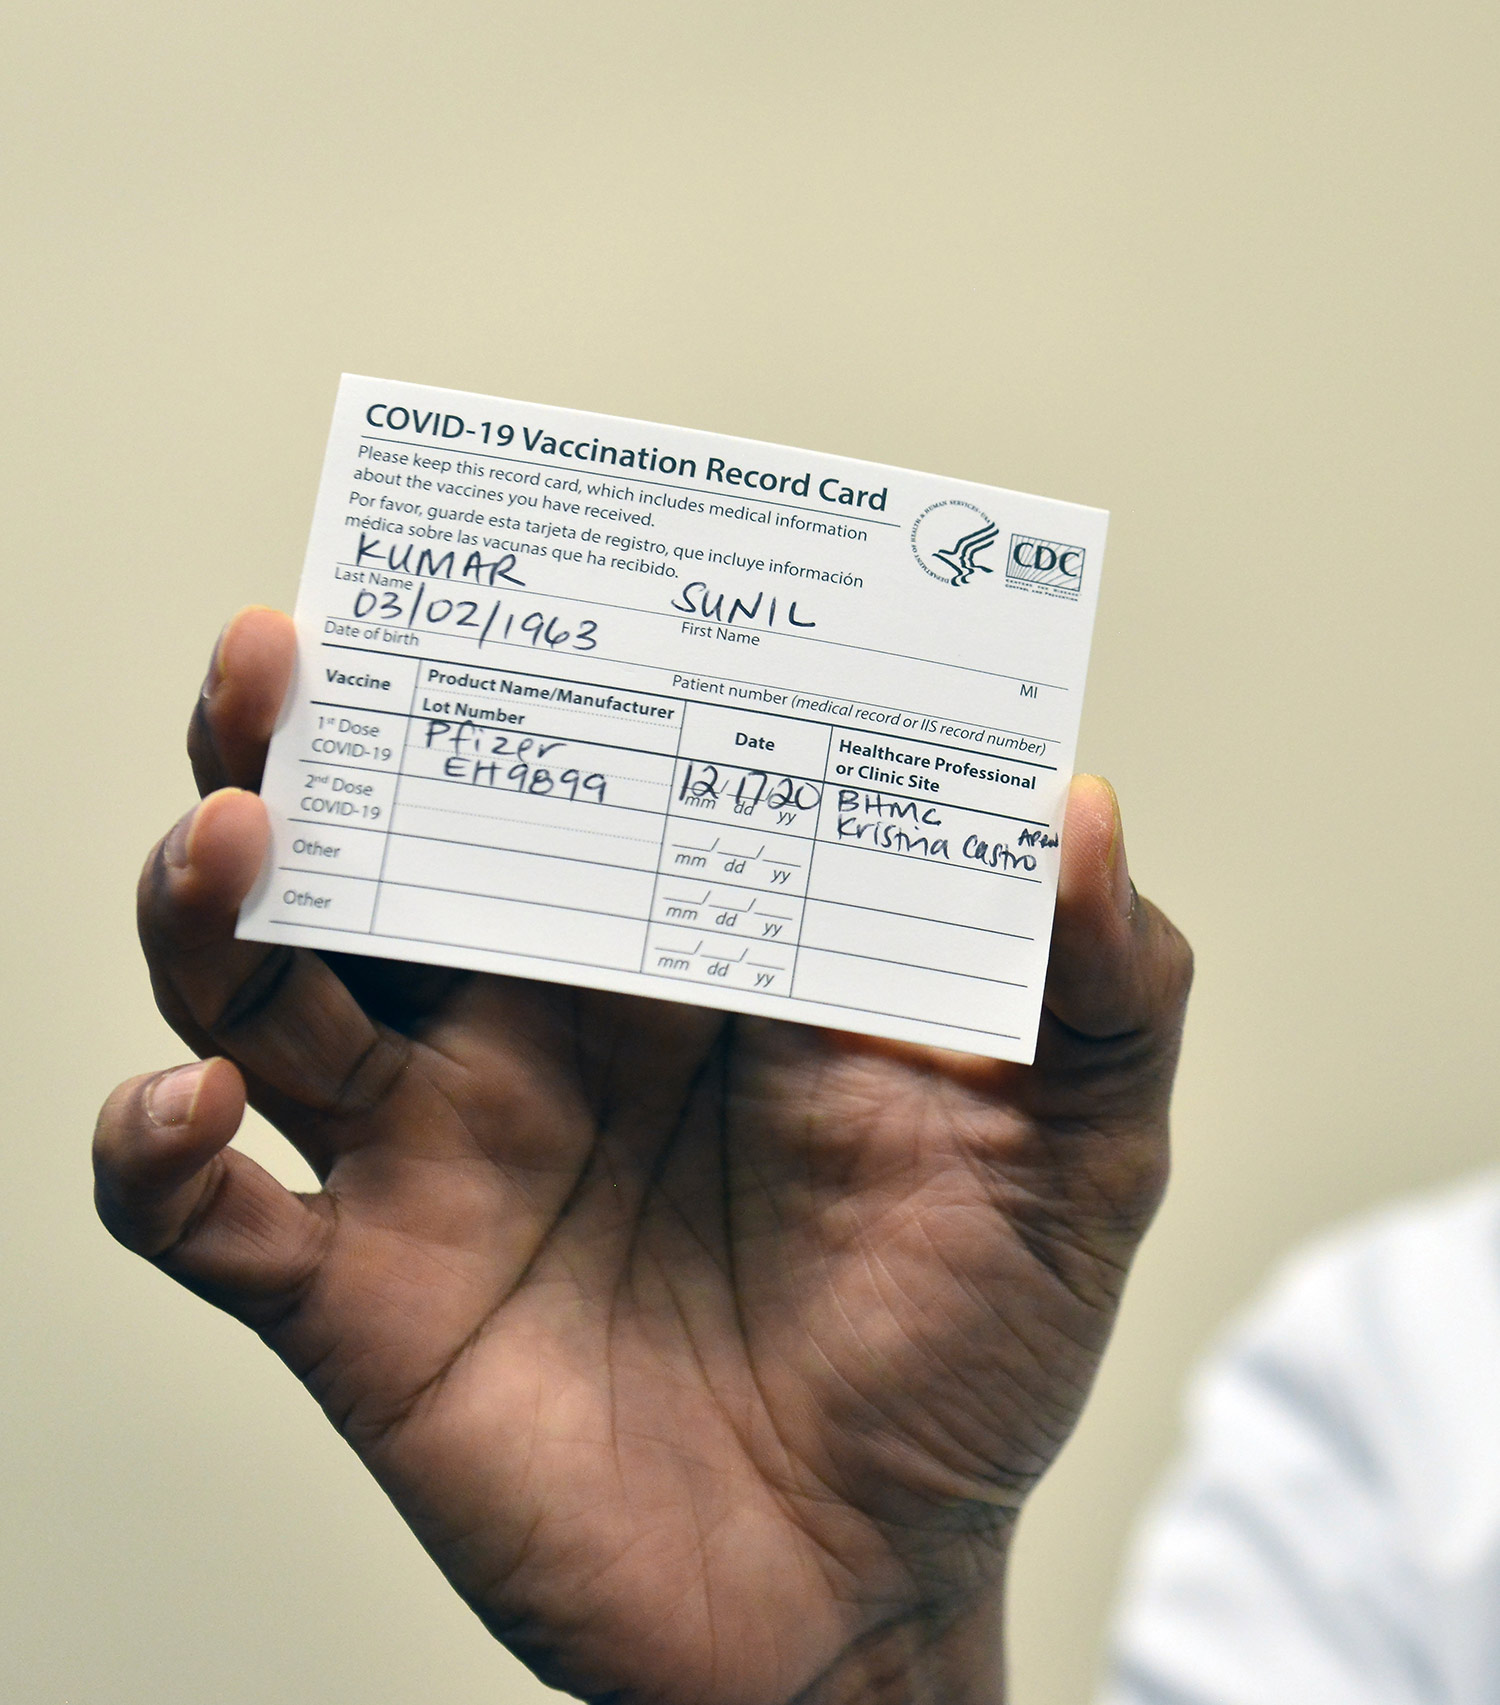 "Photo of someone holding up their vaccination card. It reads ""COVID-19 Vaccination Record Card….Last Name Kumar, First Name Sunil,"" and other personal information. They received the Pfizer vaccine. The background is beige."